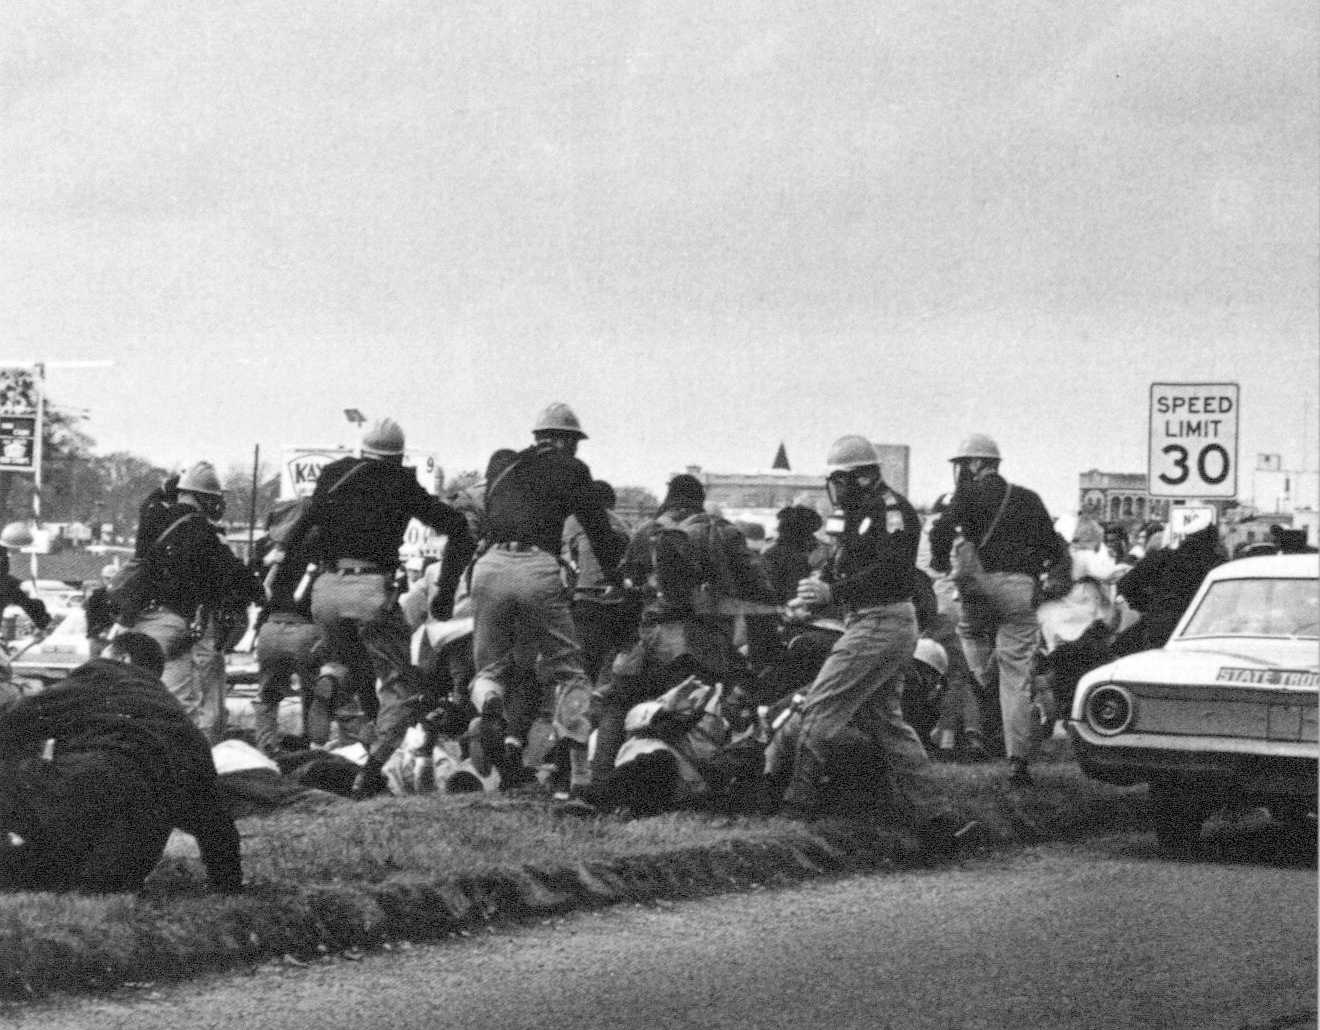 Martin Spider, Troopers charging marchers at the Pettus Bridge, Civil Rights Voting March in Selma, Alabama, March 7, 1965. Reproduced after: Steven Kasher,  The Civil Rights Movement: A Photographic History , New York 1996, 179